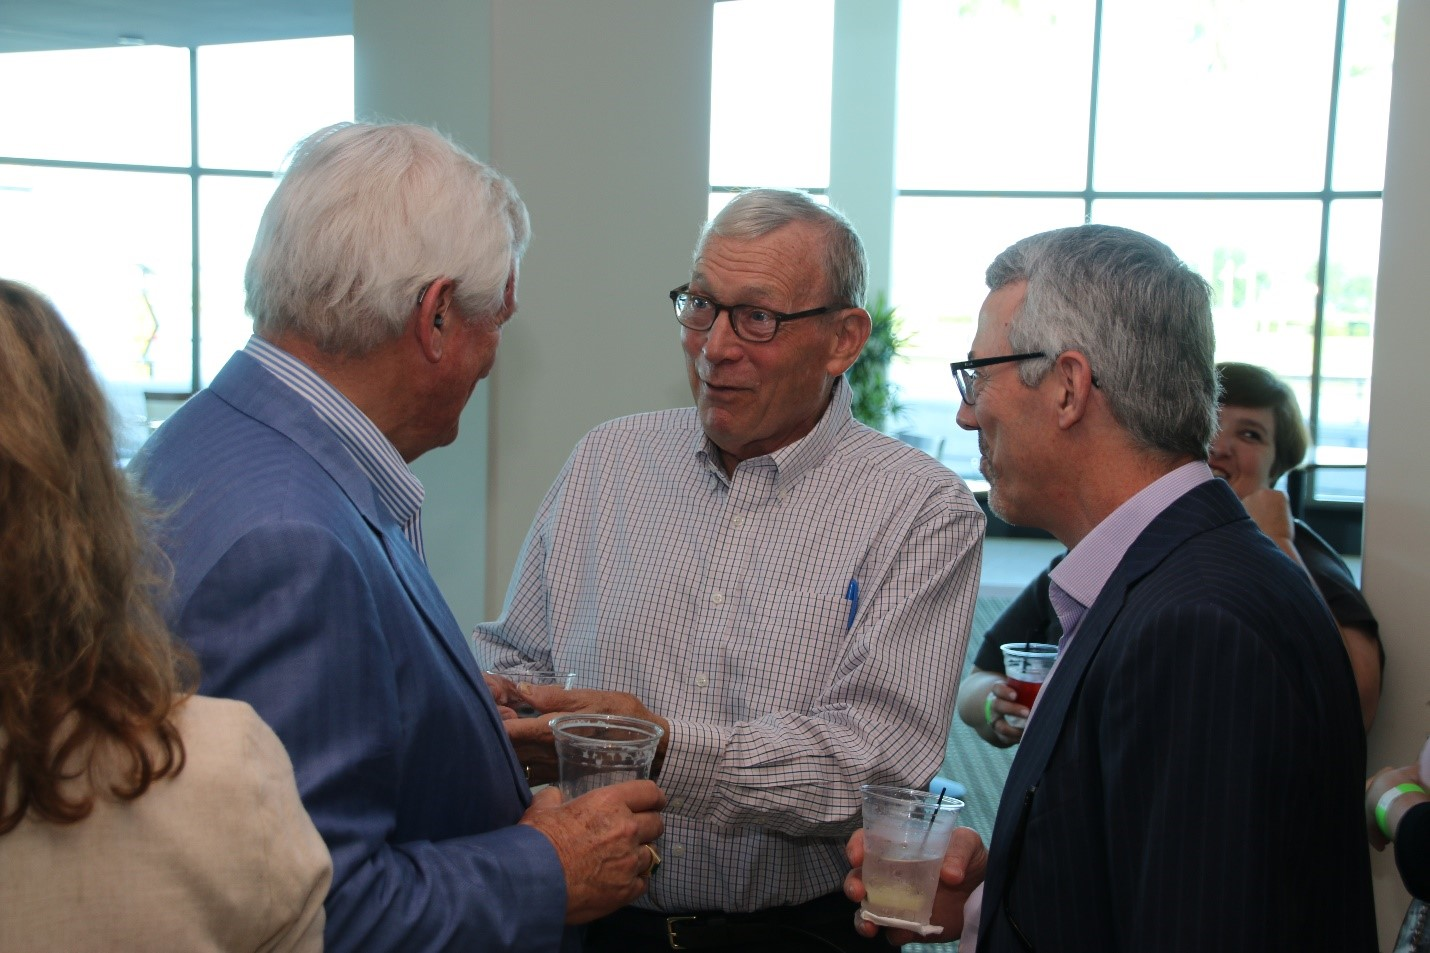 David Mearns (right) hanging out with guests at the VIP reception, including Dr. Peter Betzer (center), the founding Dean of CMS who served while Mearns was a student.